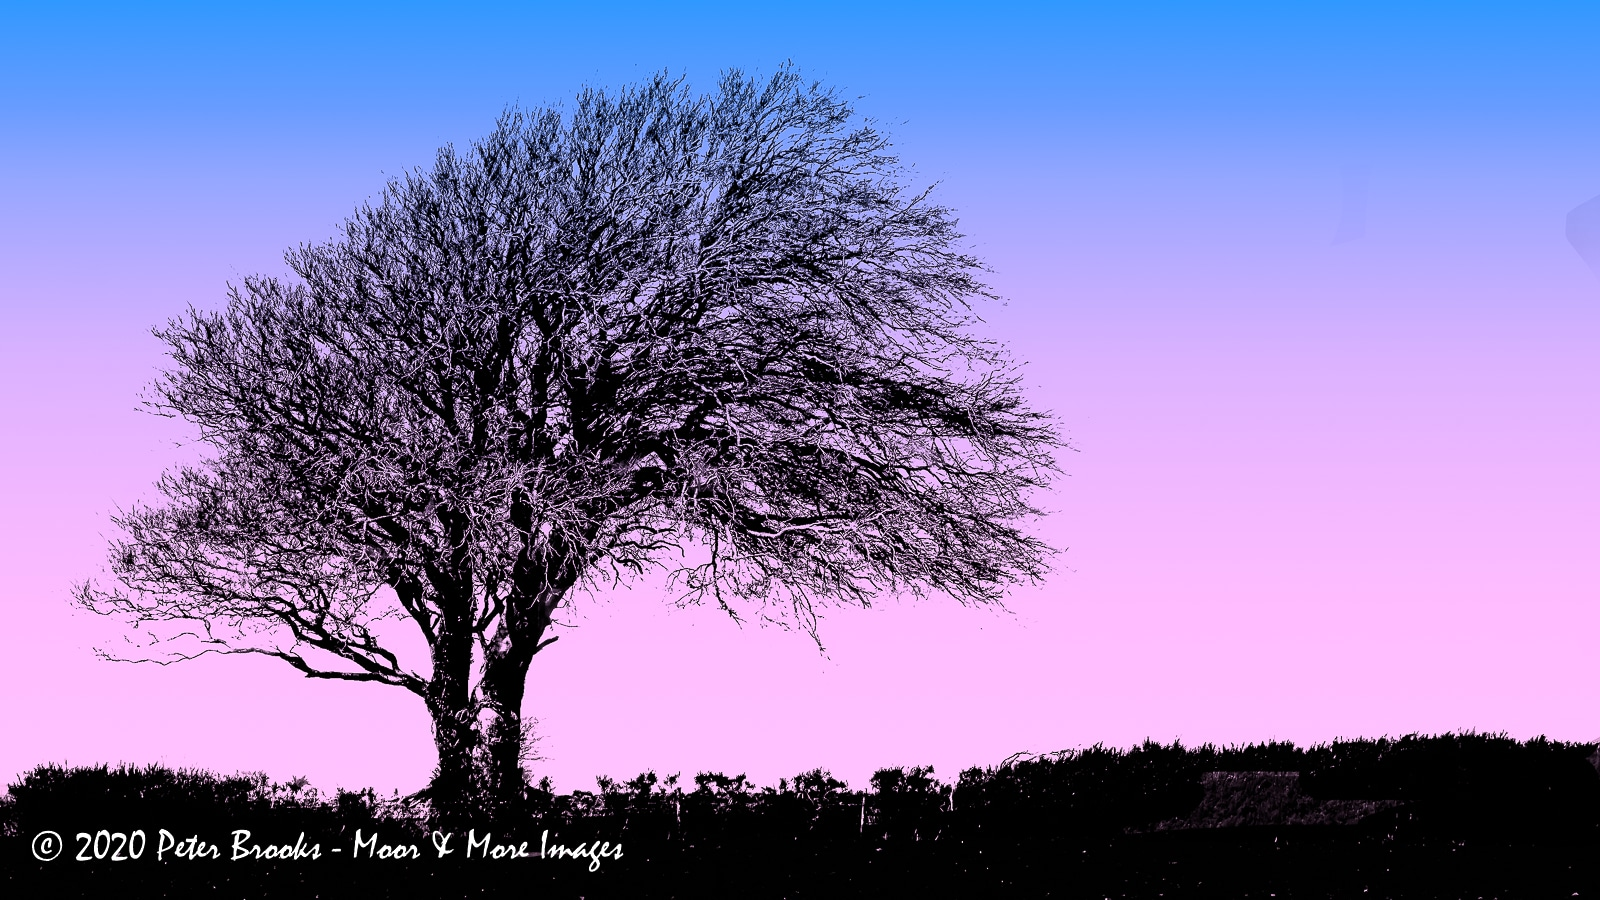 Image of a tree near Heltor, Darmoor, in the style of a linocut